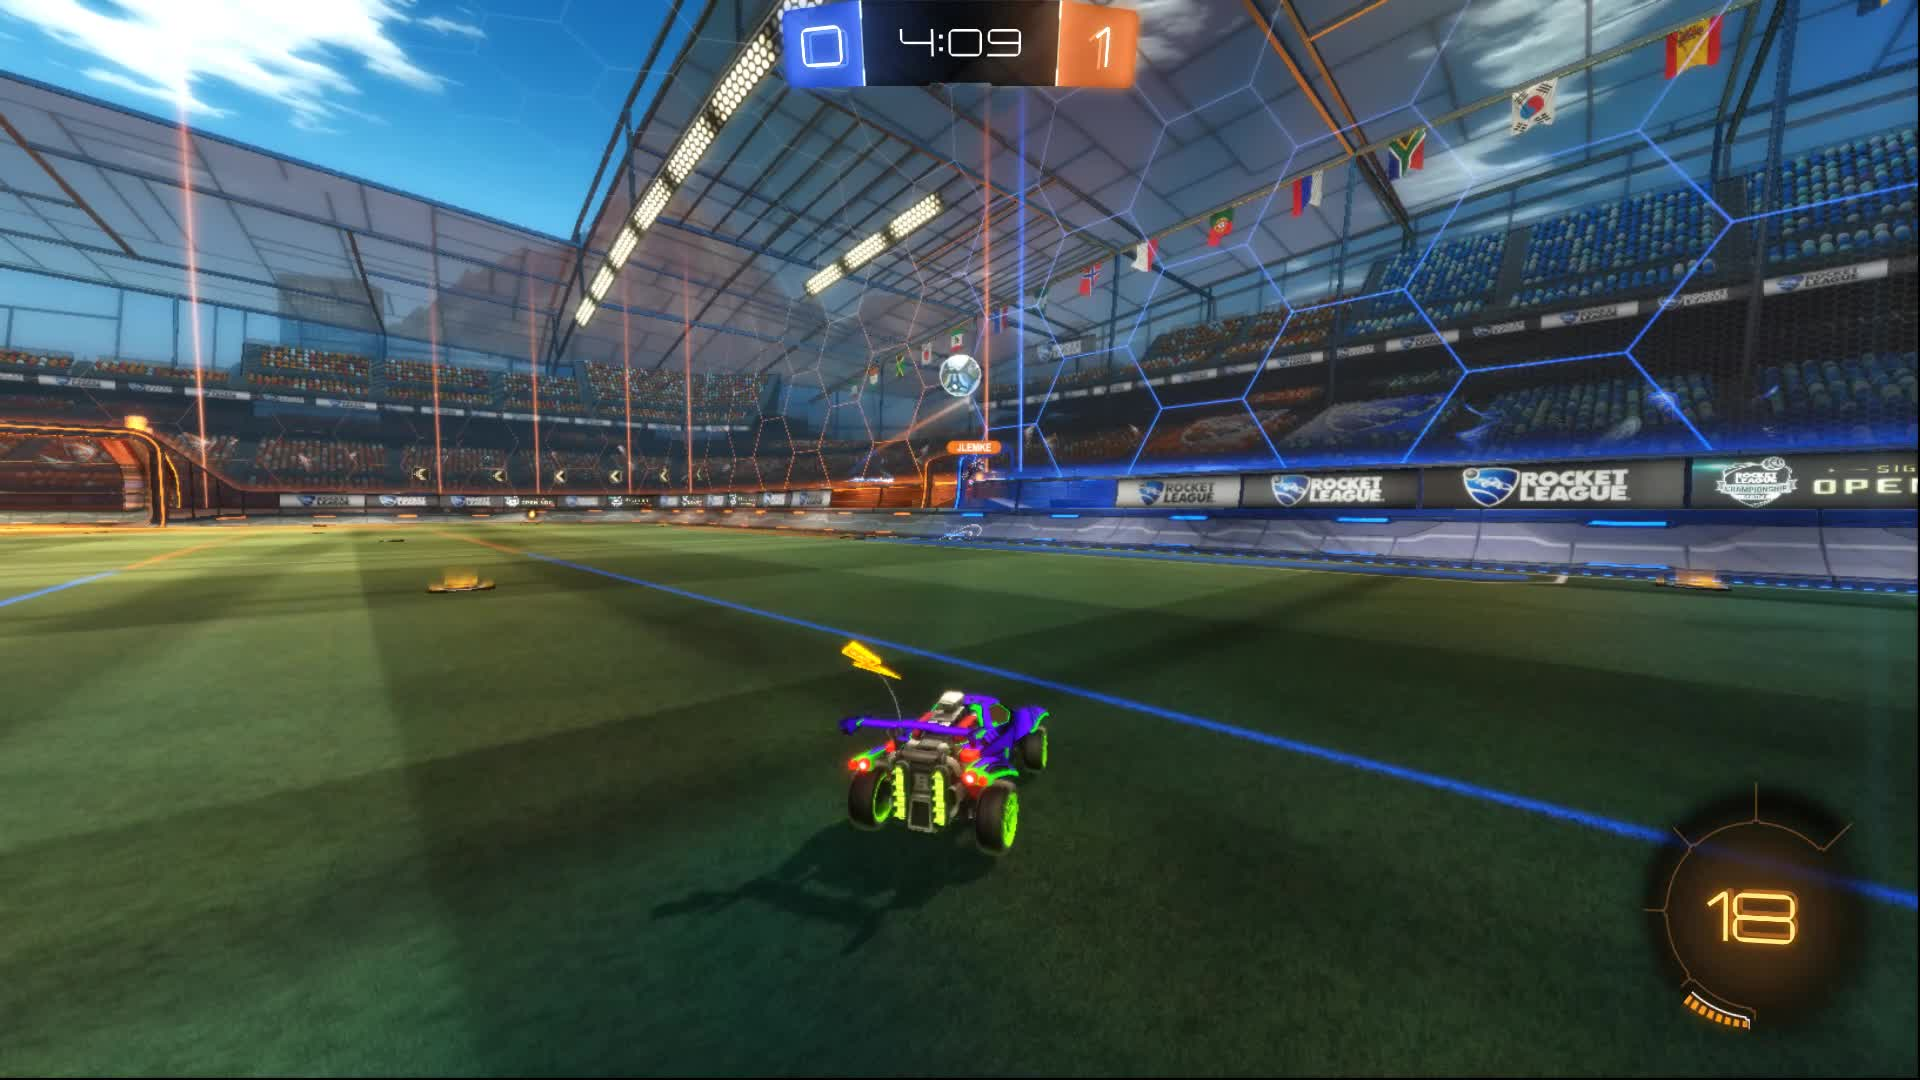 Sick redirect, or sick steal? GIFs